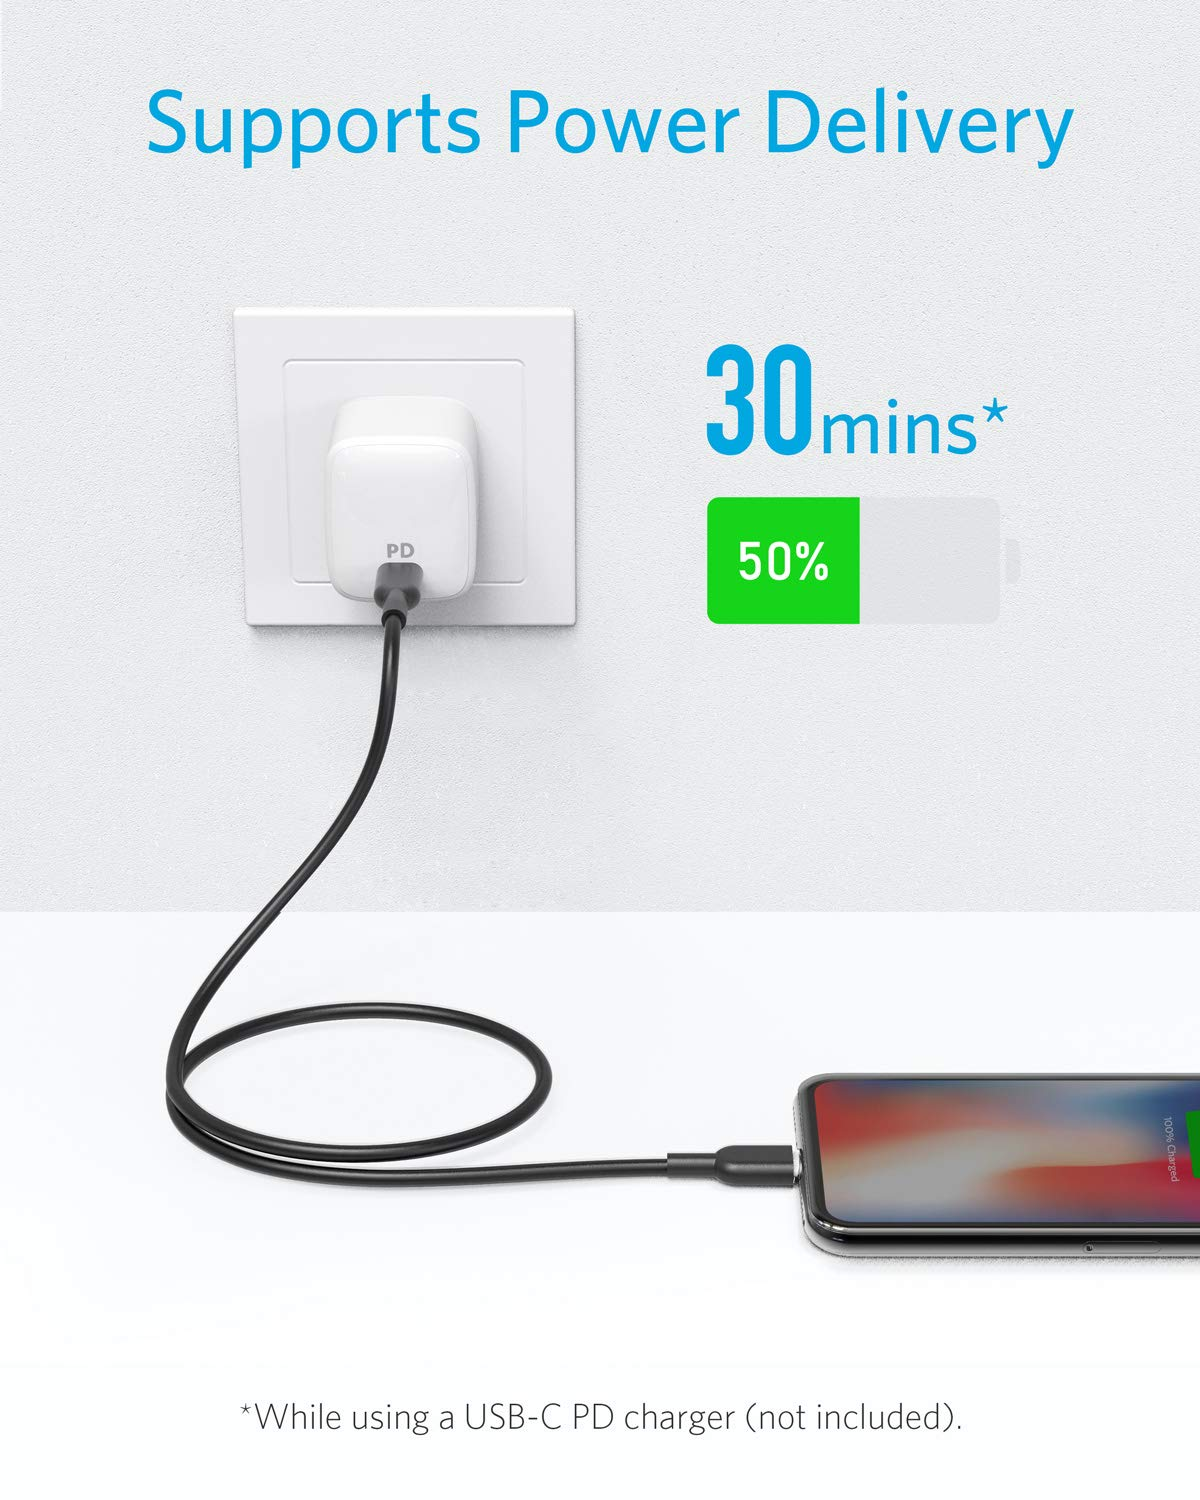 Anker-USB-C-to-Lightning-Cable-3ft-Apple-MFi-Certified-Powerline-II-for-iPhone-XXSXRXS-Max-88-Plus-Supports-Power-Delivery-for-Use-with-Type-C-Chargers